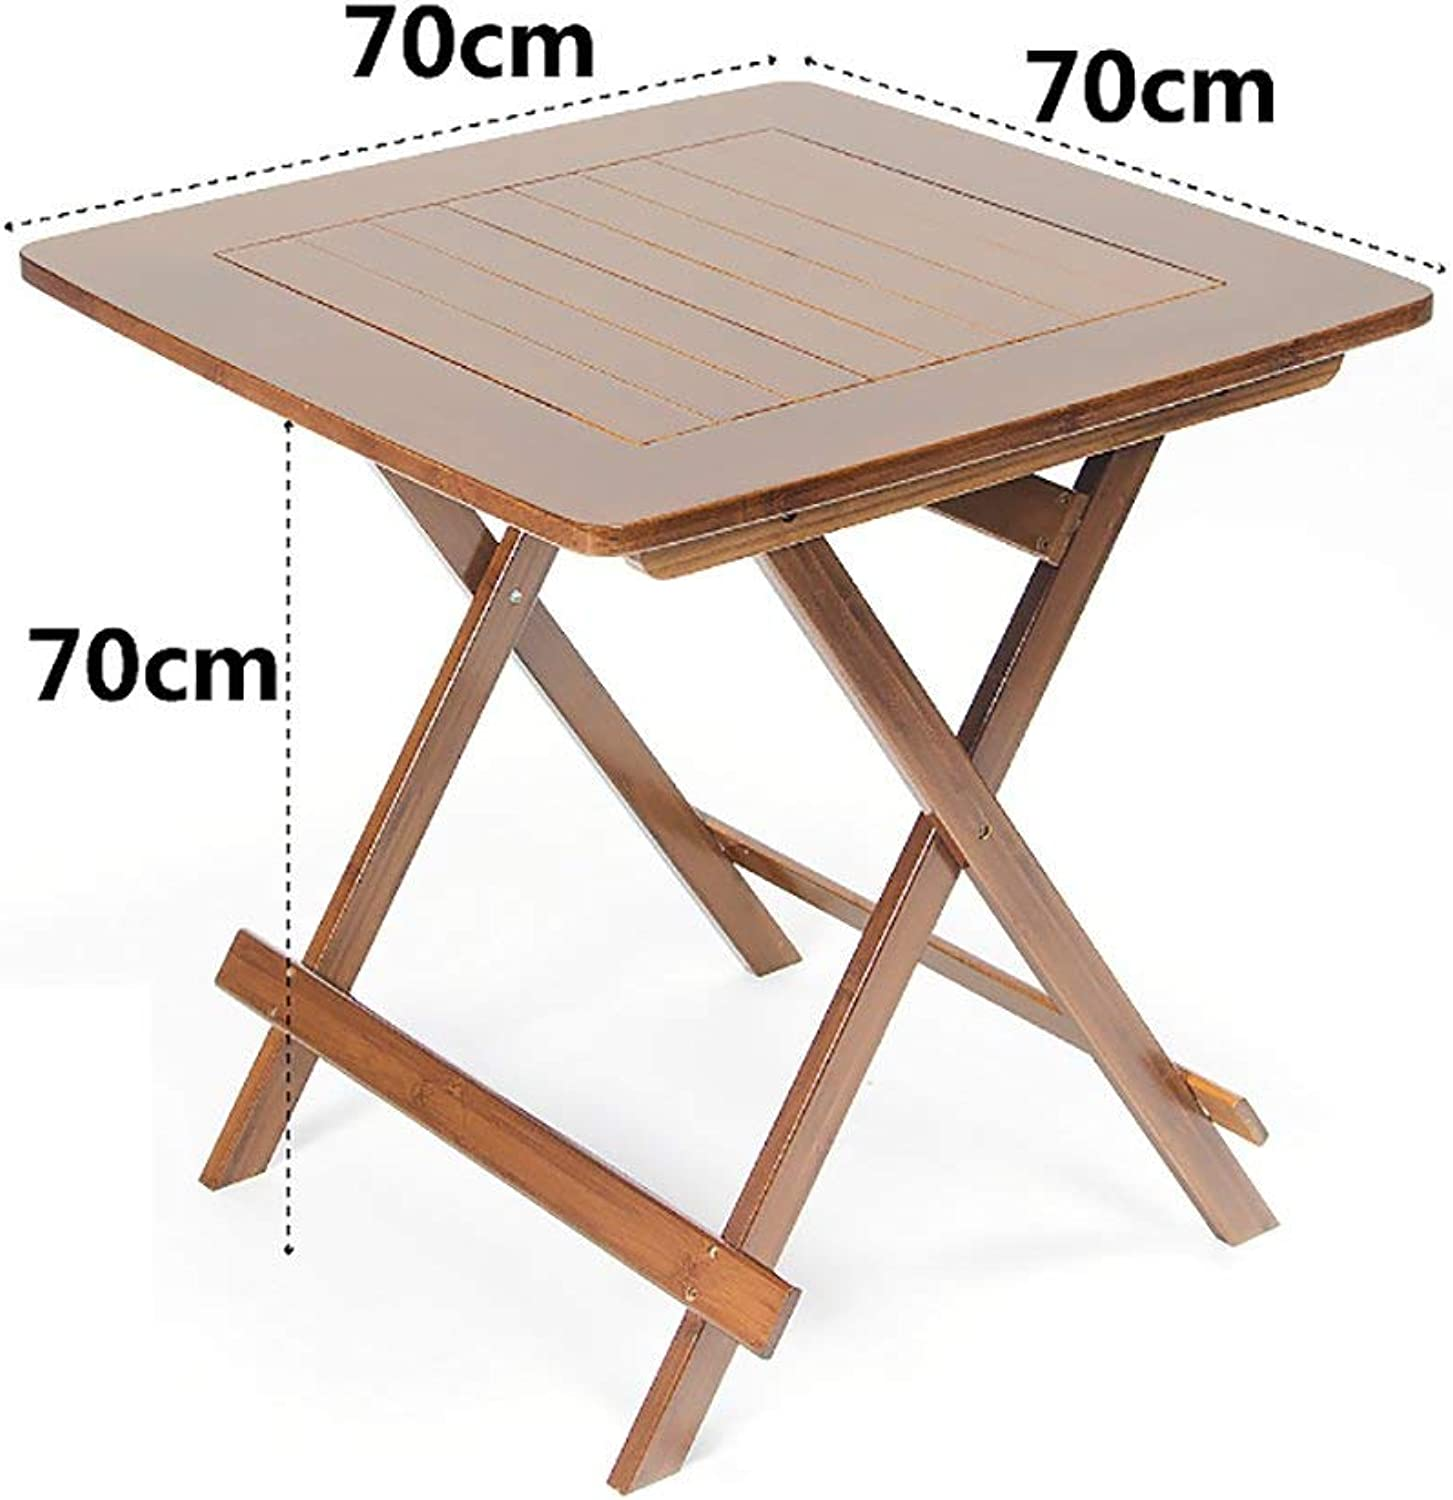 Living Office Simple Storage Table FPF Folding Tables Leisure Table Simple Dining Table Learning Table Bamboo Folding Table (3 Sizes Optional) Easy to Move and Carry (Size   LWH  70  70  59cm)